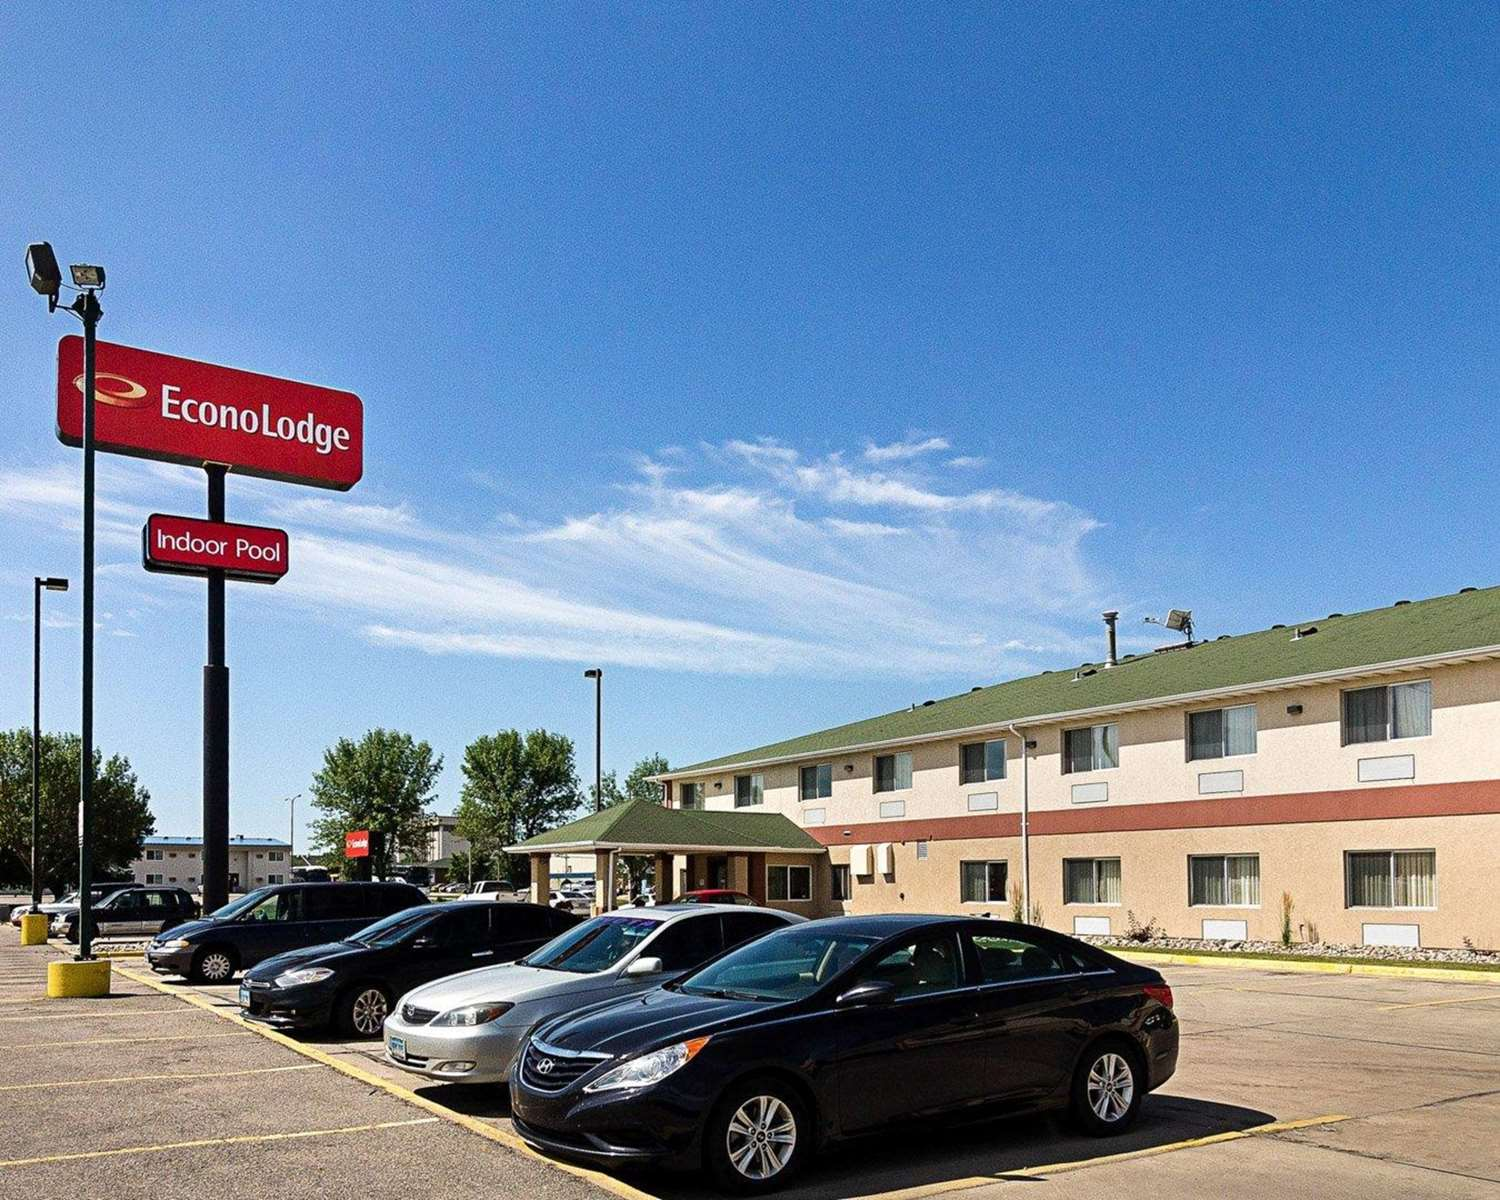 ... Exterior view - Econo Lodge West Fargo